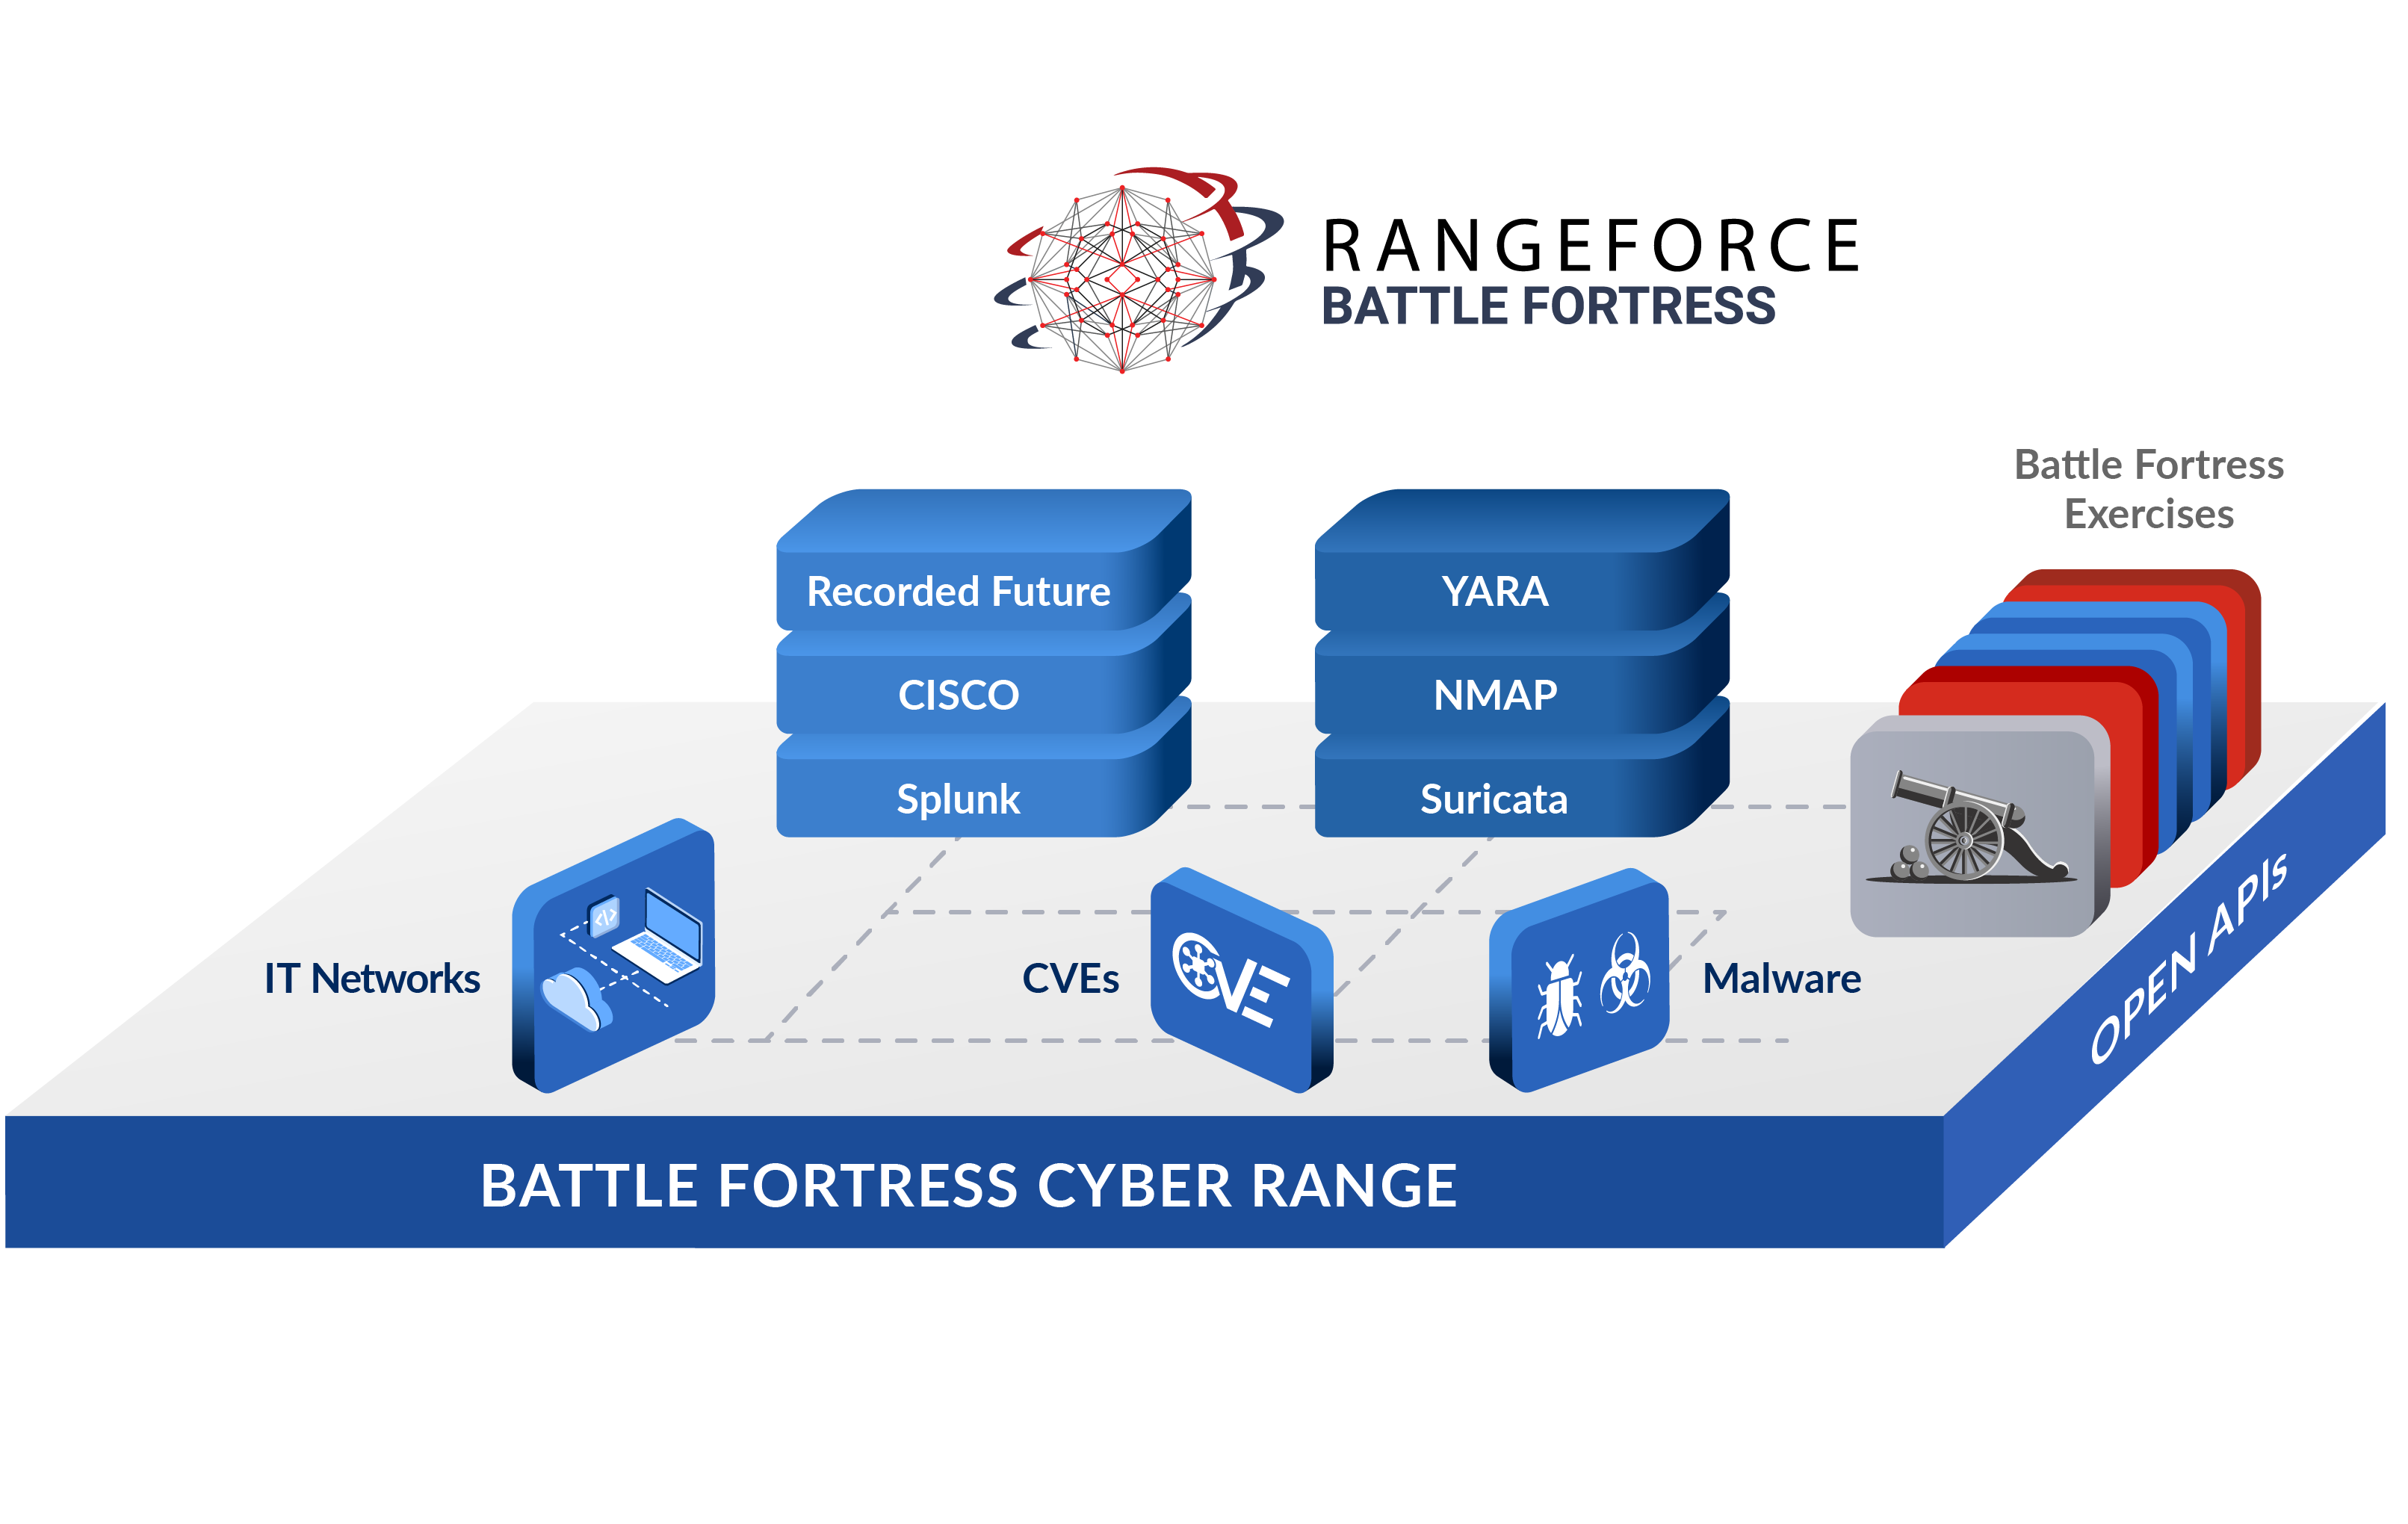 Cyber Range Battle Fortress